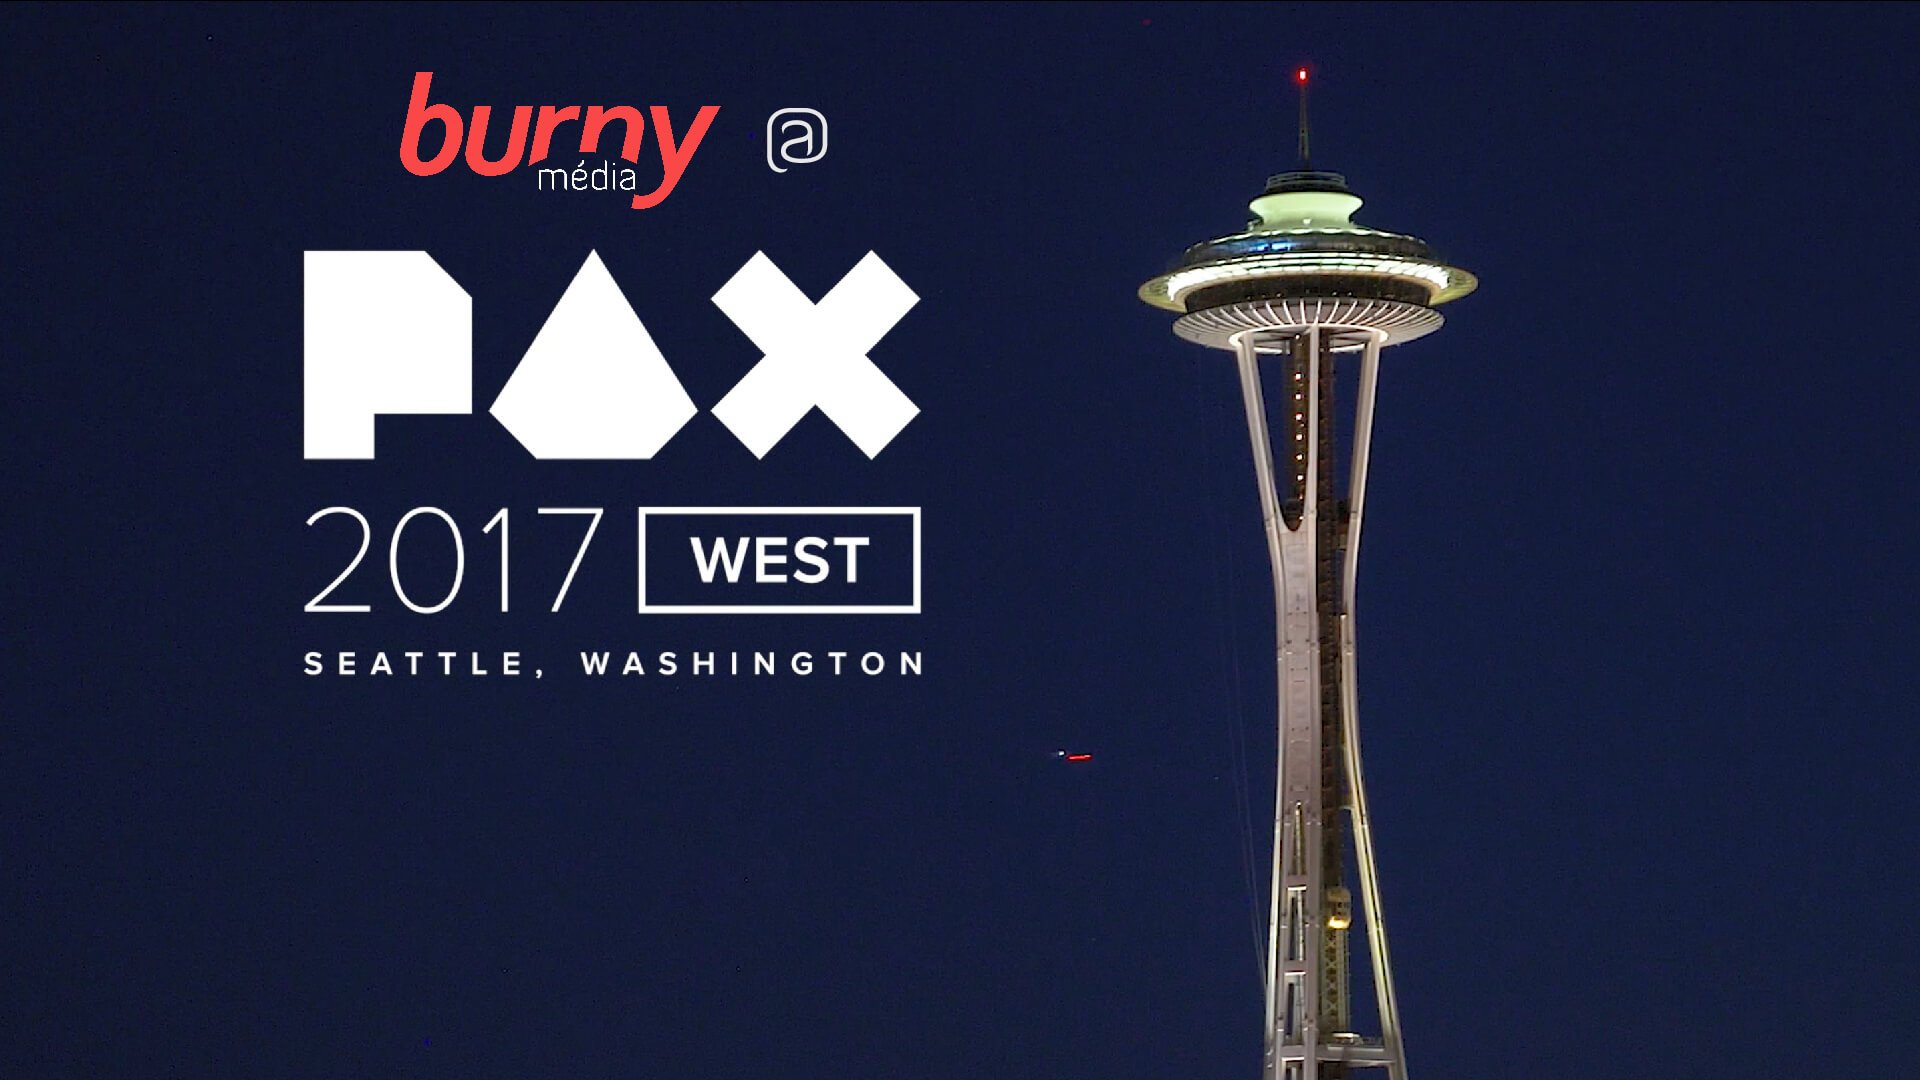 Burny média @ PAX West 2017